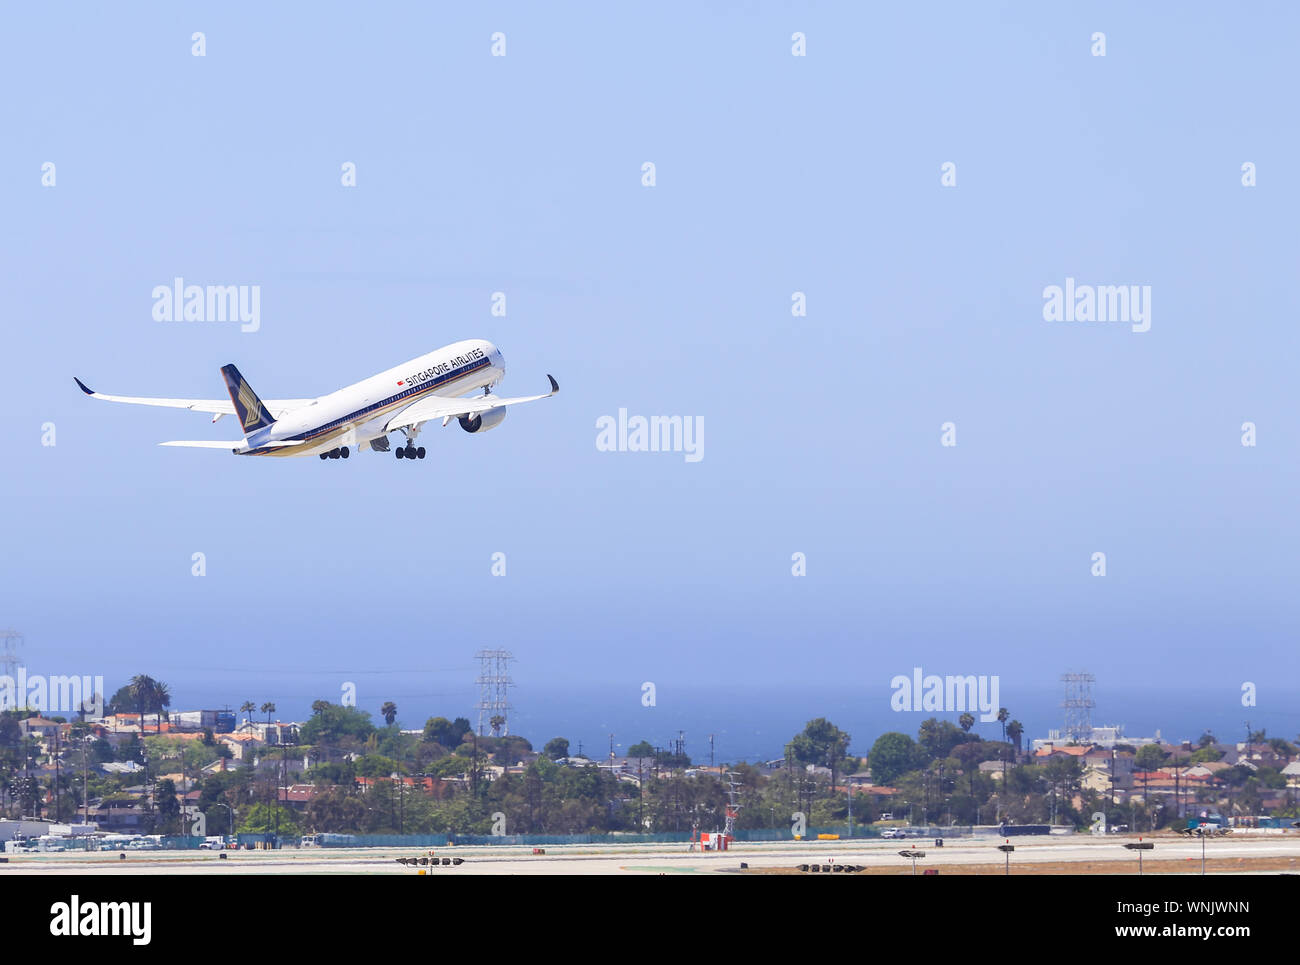 Los Angeles, California, USA - May 22, 2019: A Singapore Airlines Airbus A350 takes off from Los Angeles International Airport (LAX). Stock Photo